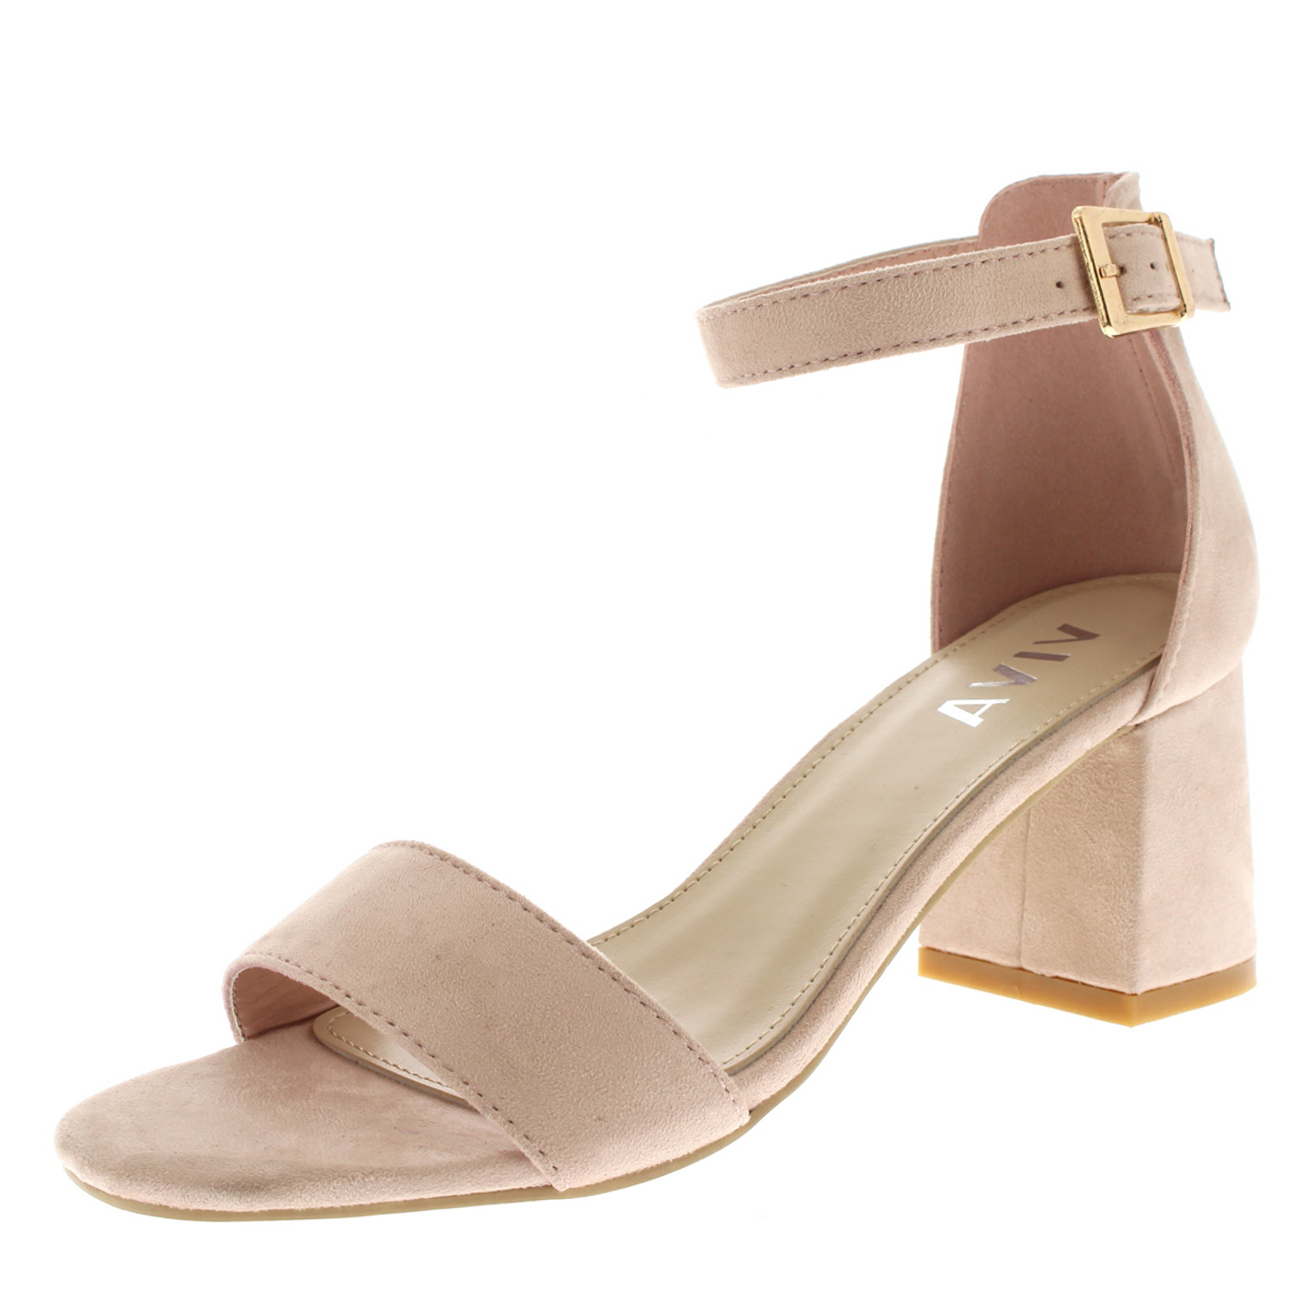 122ca0eaa21 Womens Sandal Cut Out Block Heel Open Toe Barely There Ankle Strap ...